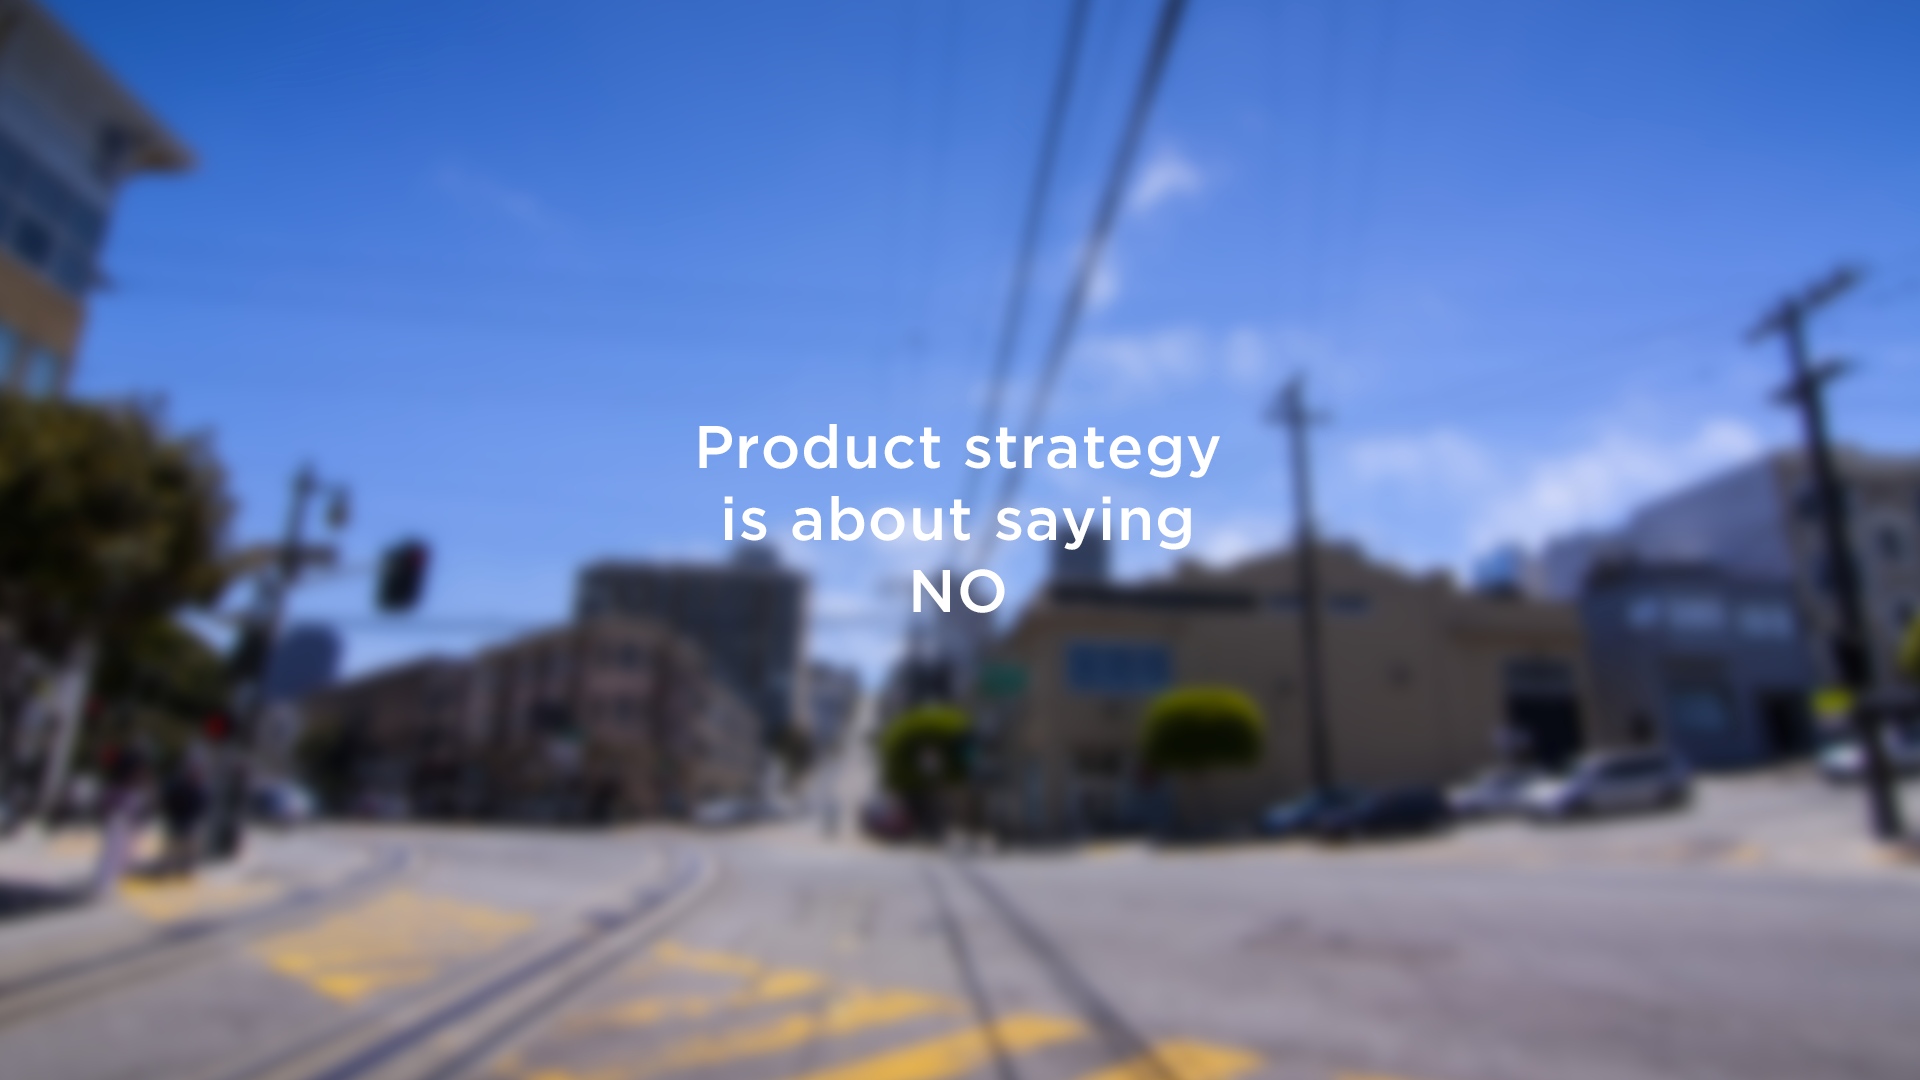 Product Strategy Means Saying No